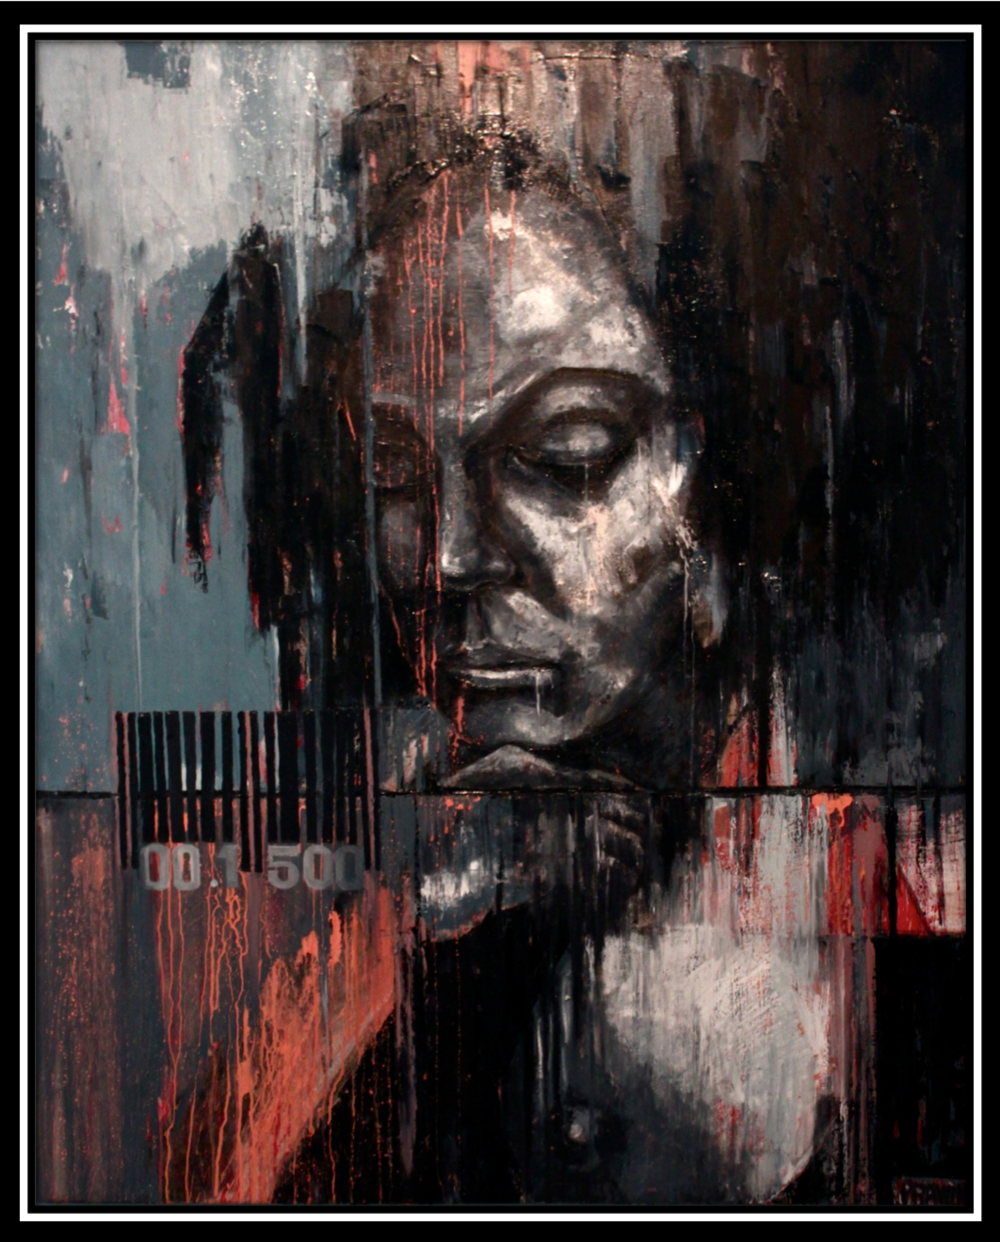 Rawin.artworks - 'The woman' Oil on canvas. 150x120 cm.